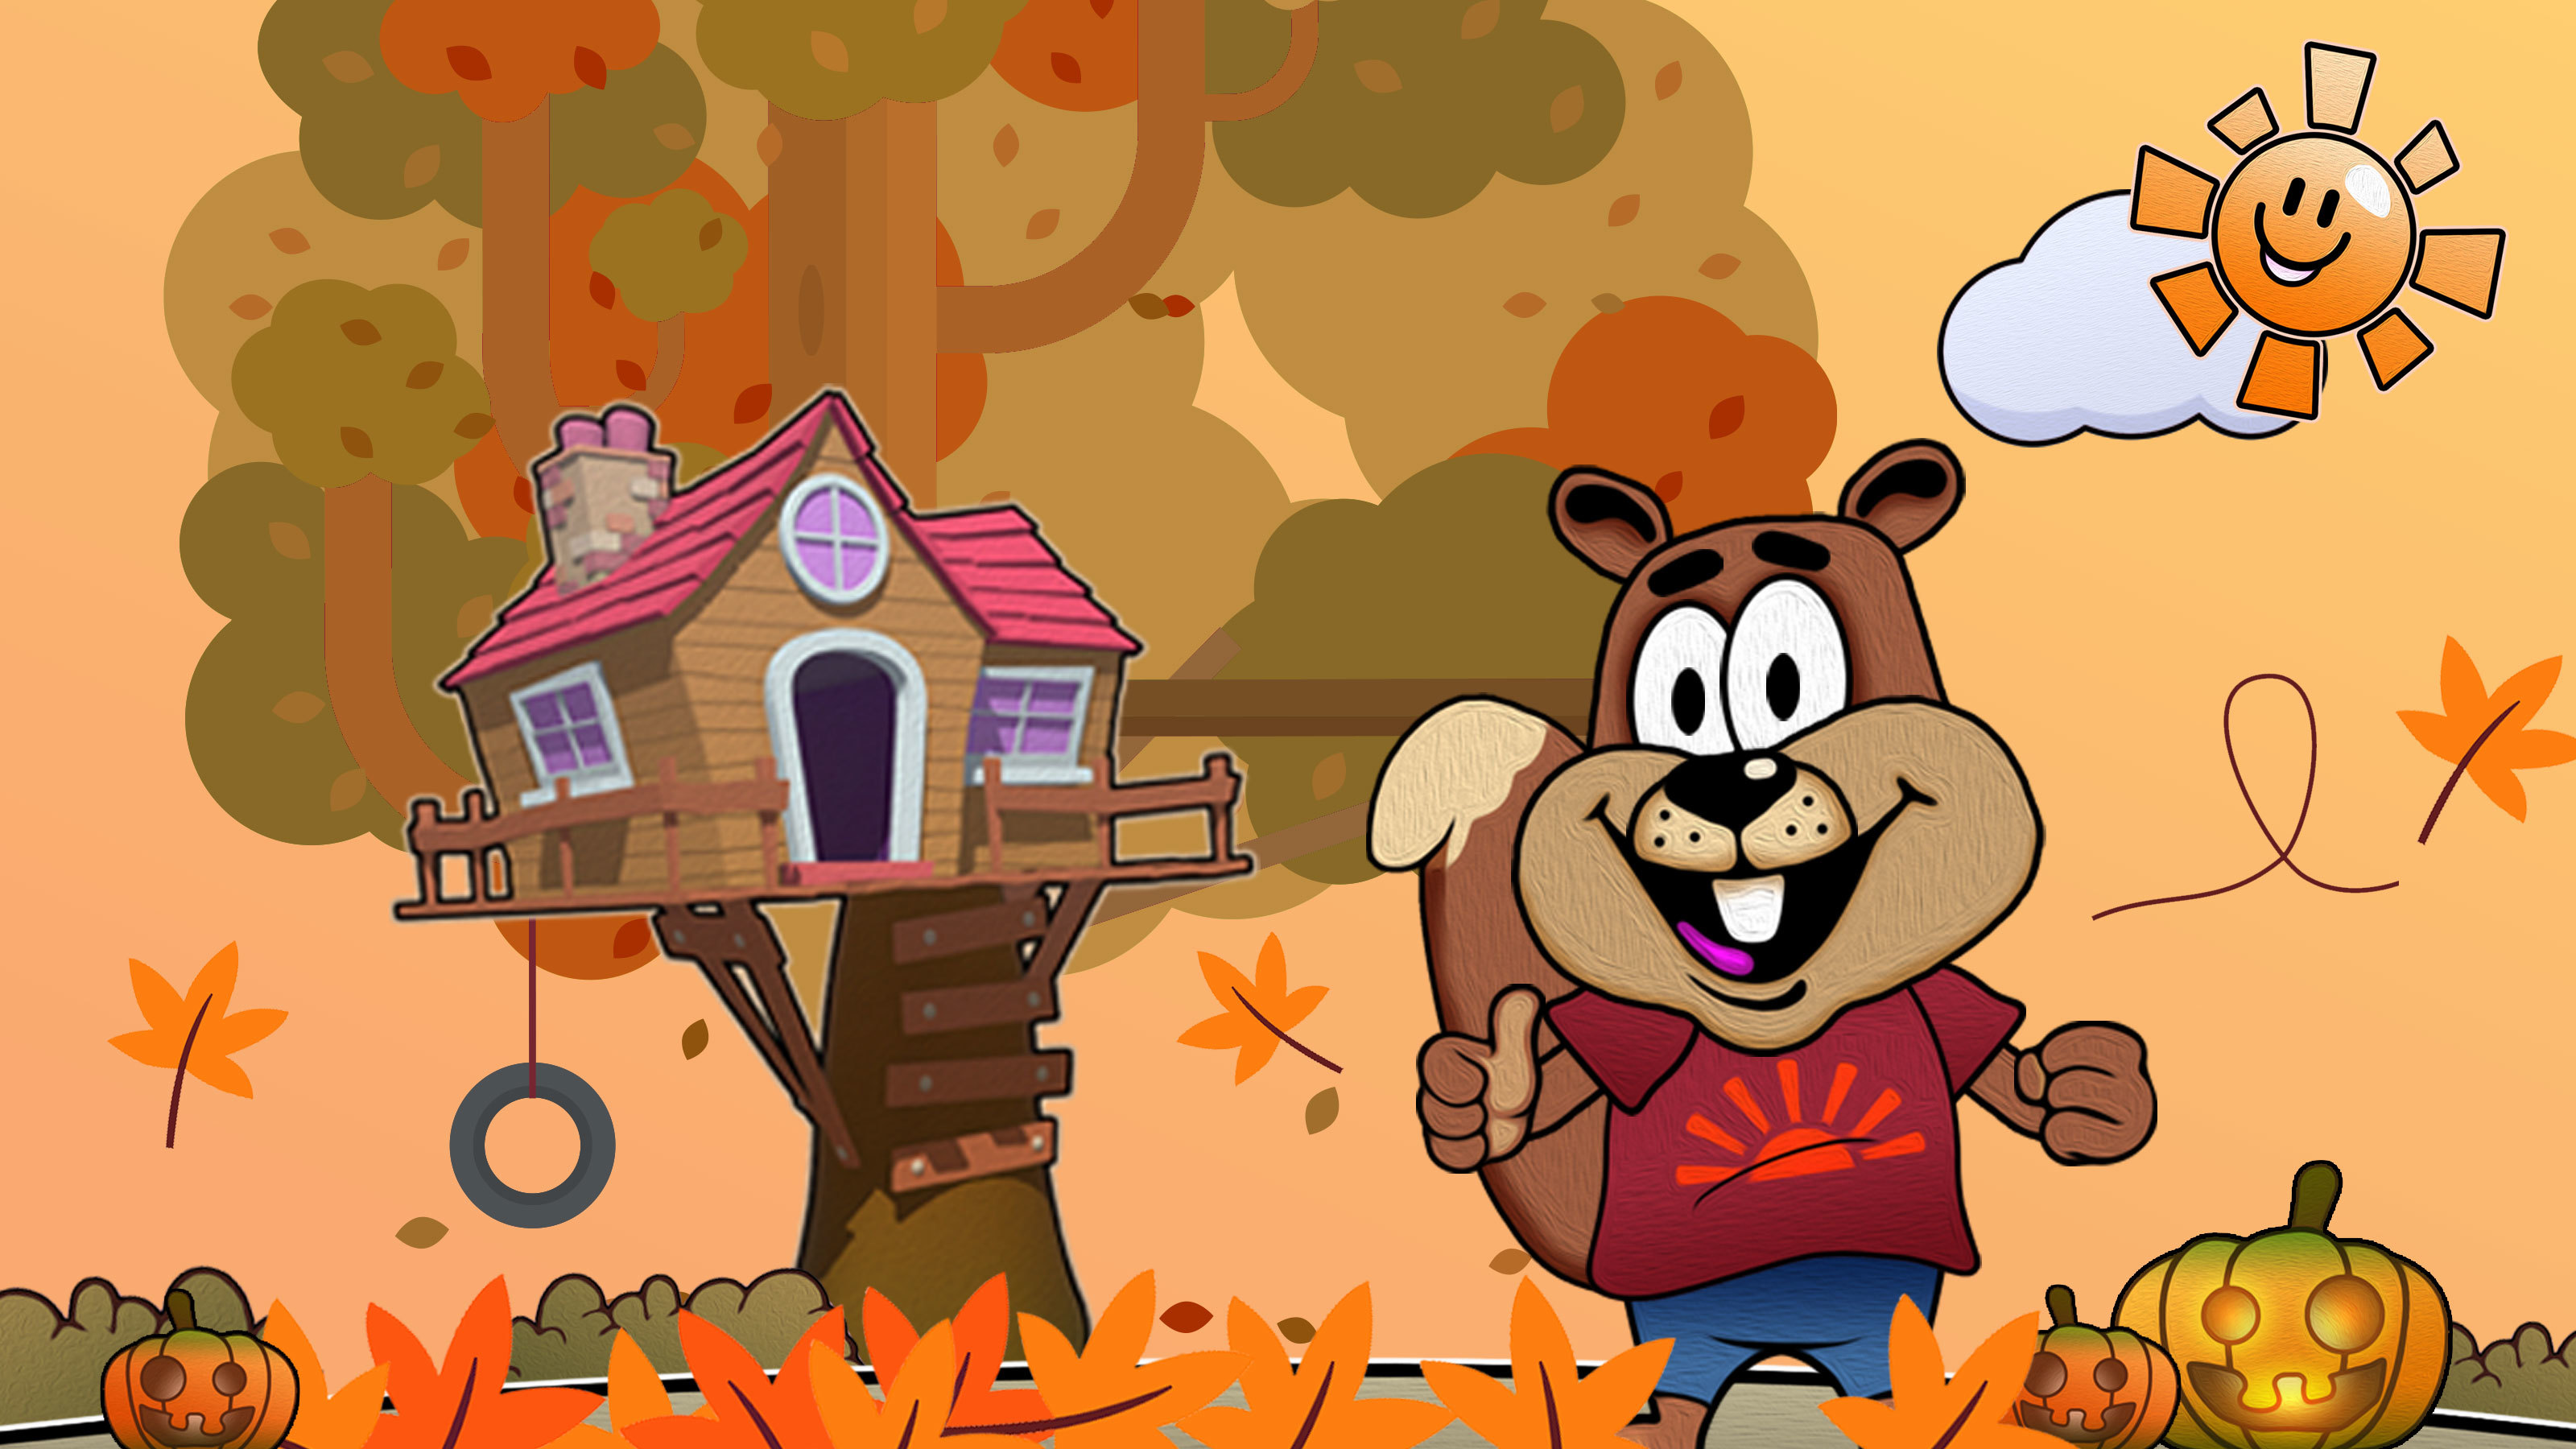 Catroon-of-Cyril-the-squirrel-and-treehouses-in-autumn